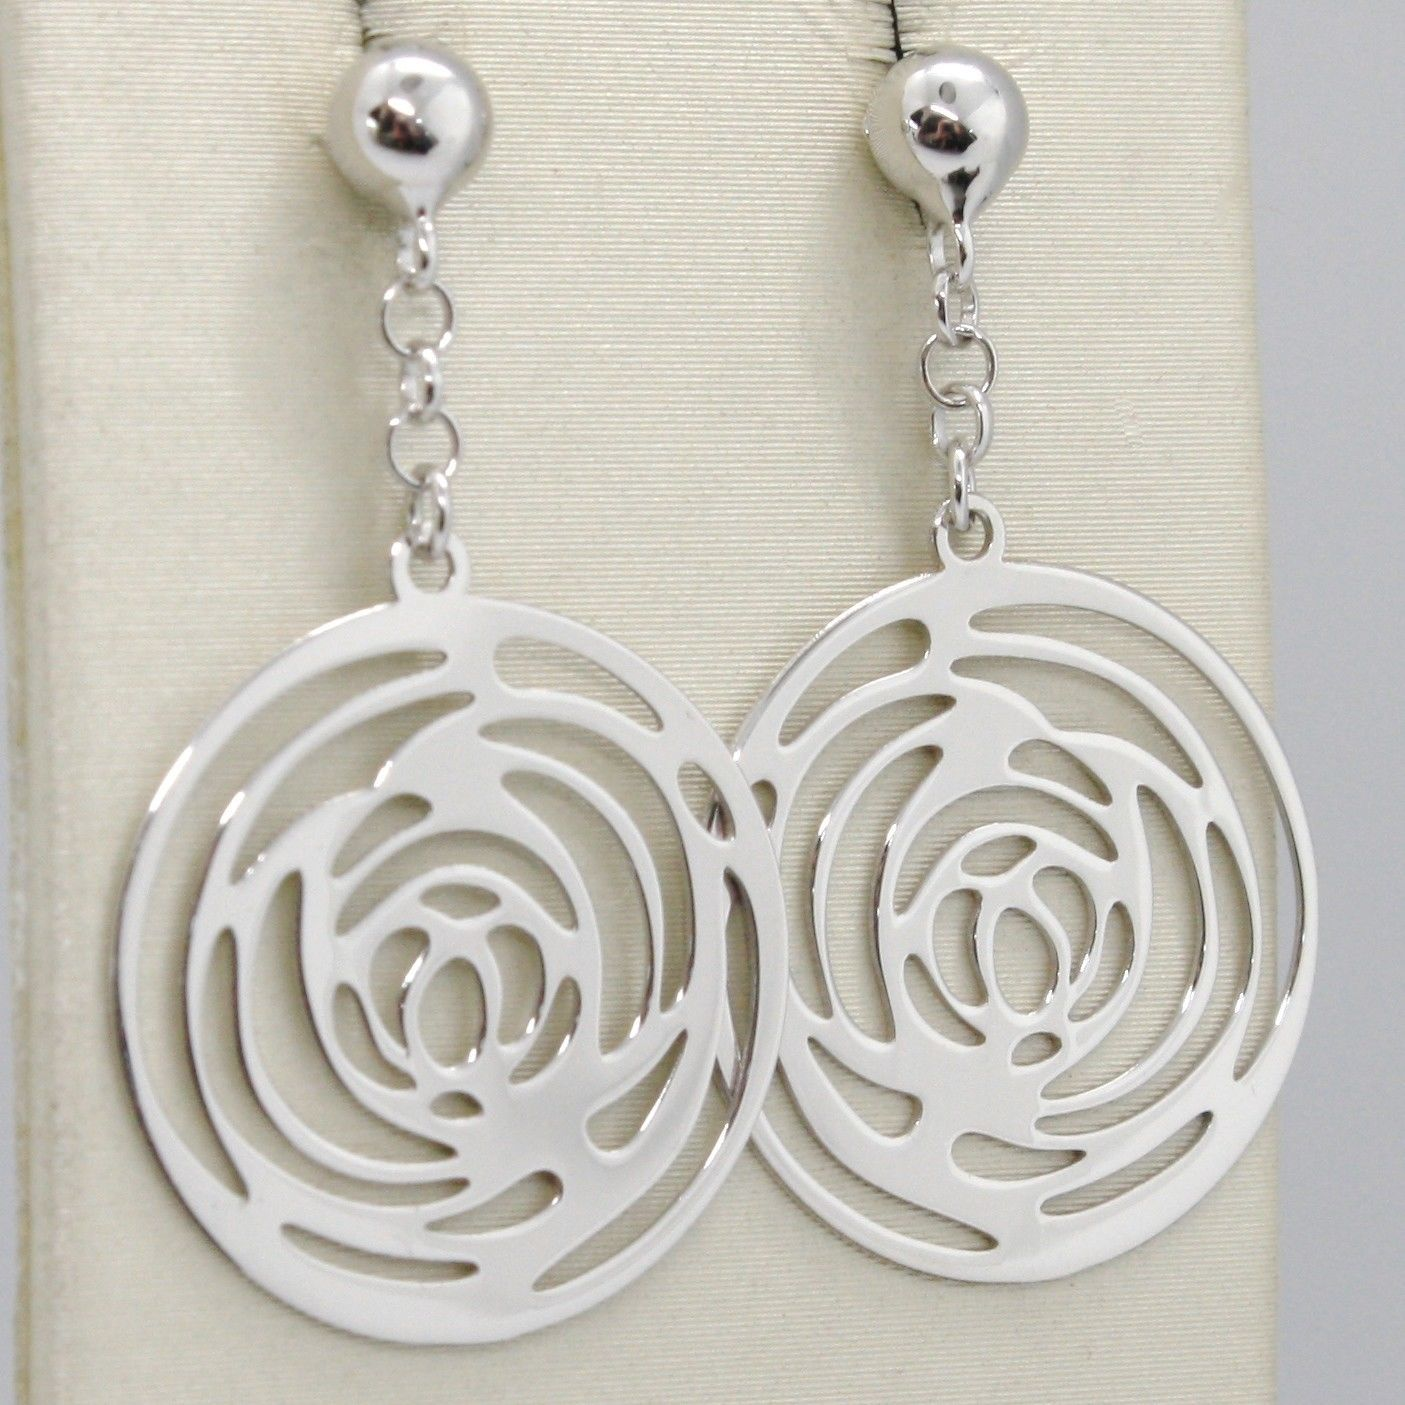 SOLID 18K WHITE GOLD PENDANT EARRINGS, FLOWER ROSE WORKED DISC, MADE IN ITALY